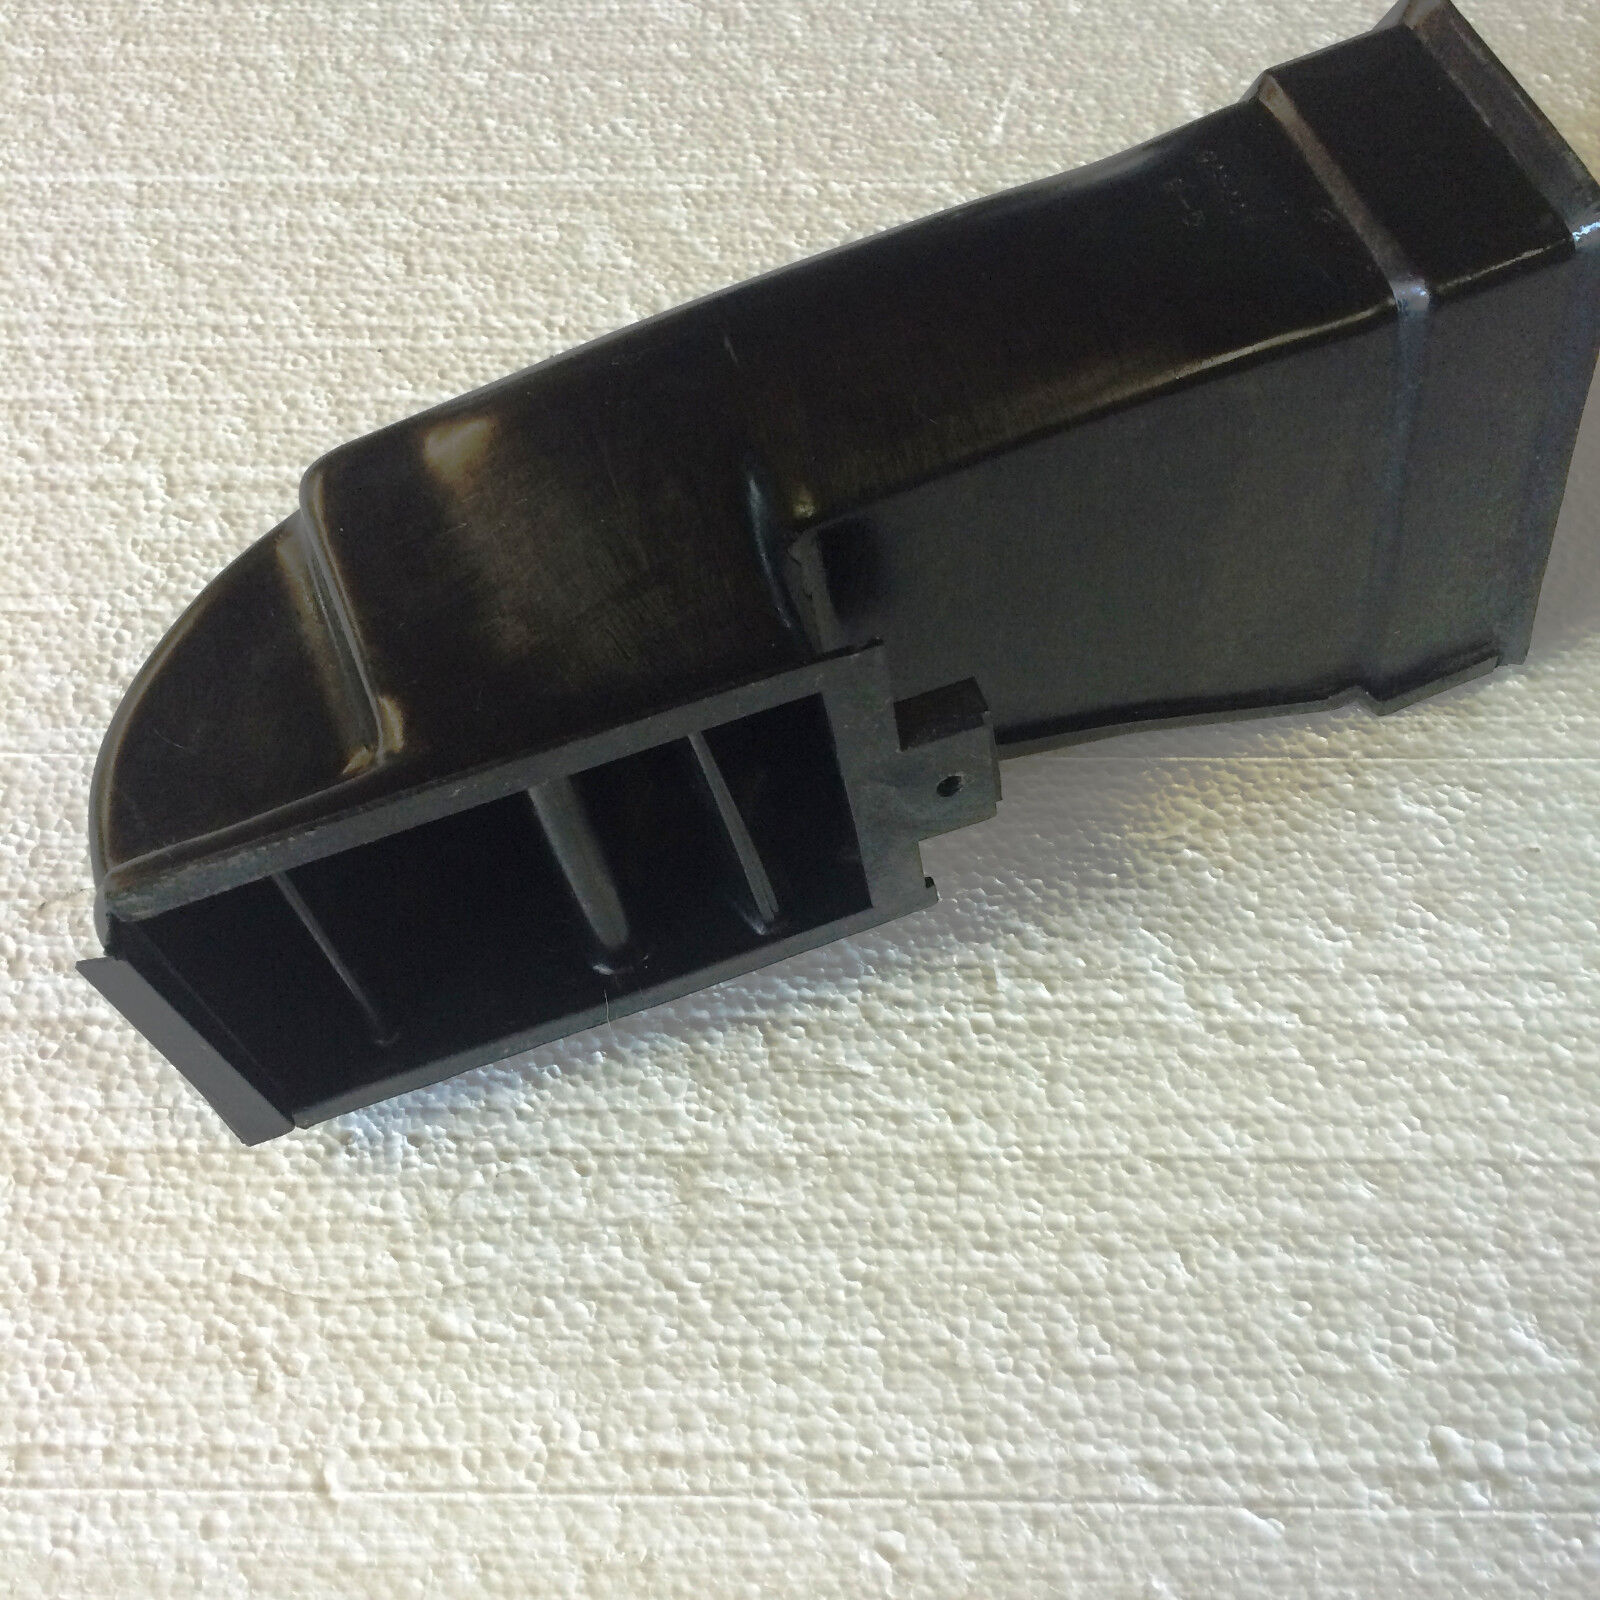 #595041 70 81 Trans Am Center A/C Dash Duct For Center Vent AC Air  Top of The Line 14404 Trans Air Air Conditioning picture with 1600x1600 px on helpvideos.info - Air Conditioners, Air Coolers and more